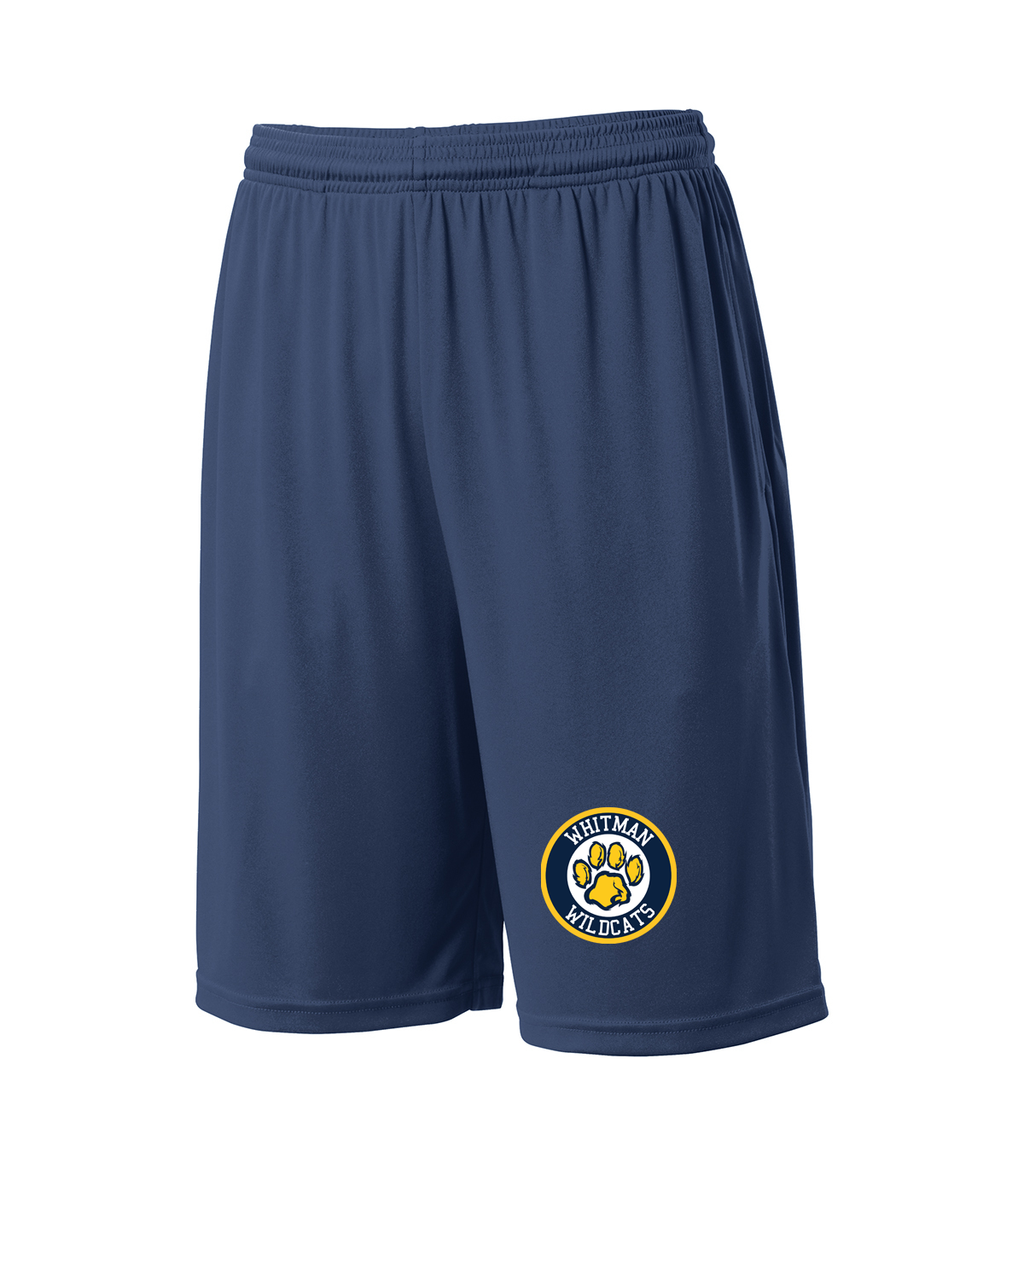 Whitman Wildcats Shorts